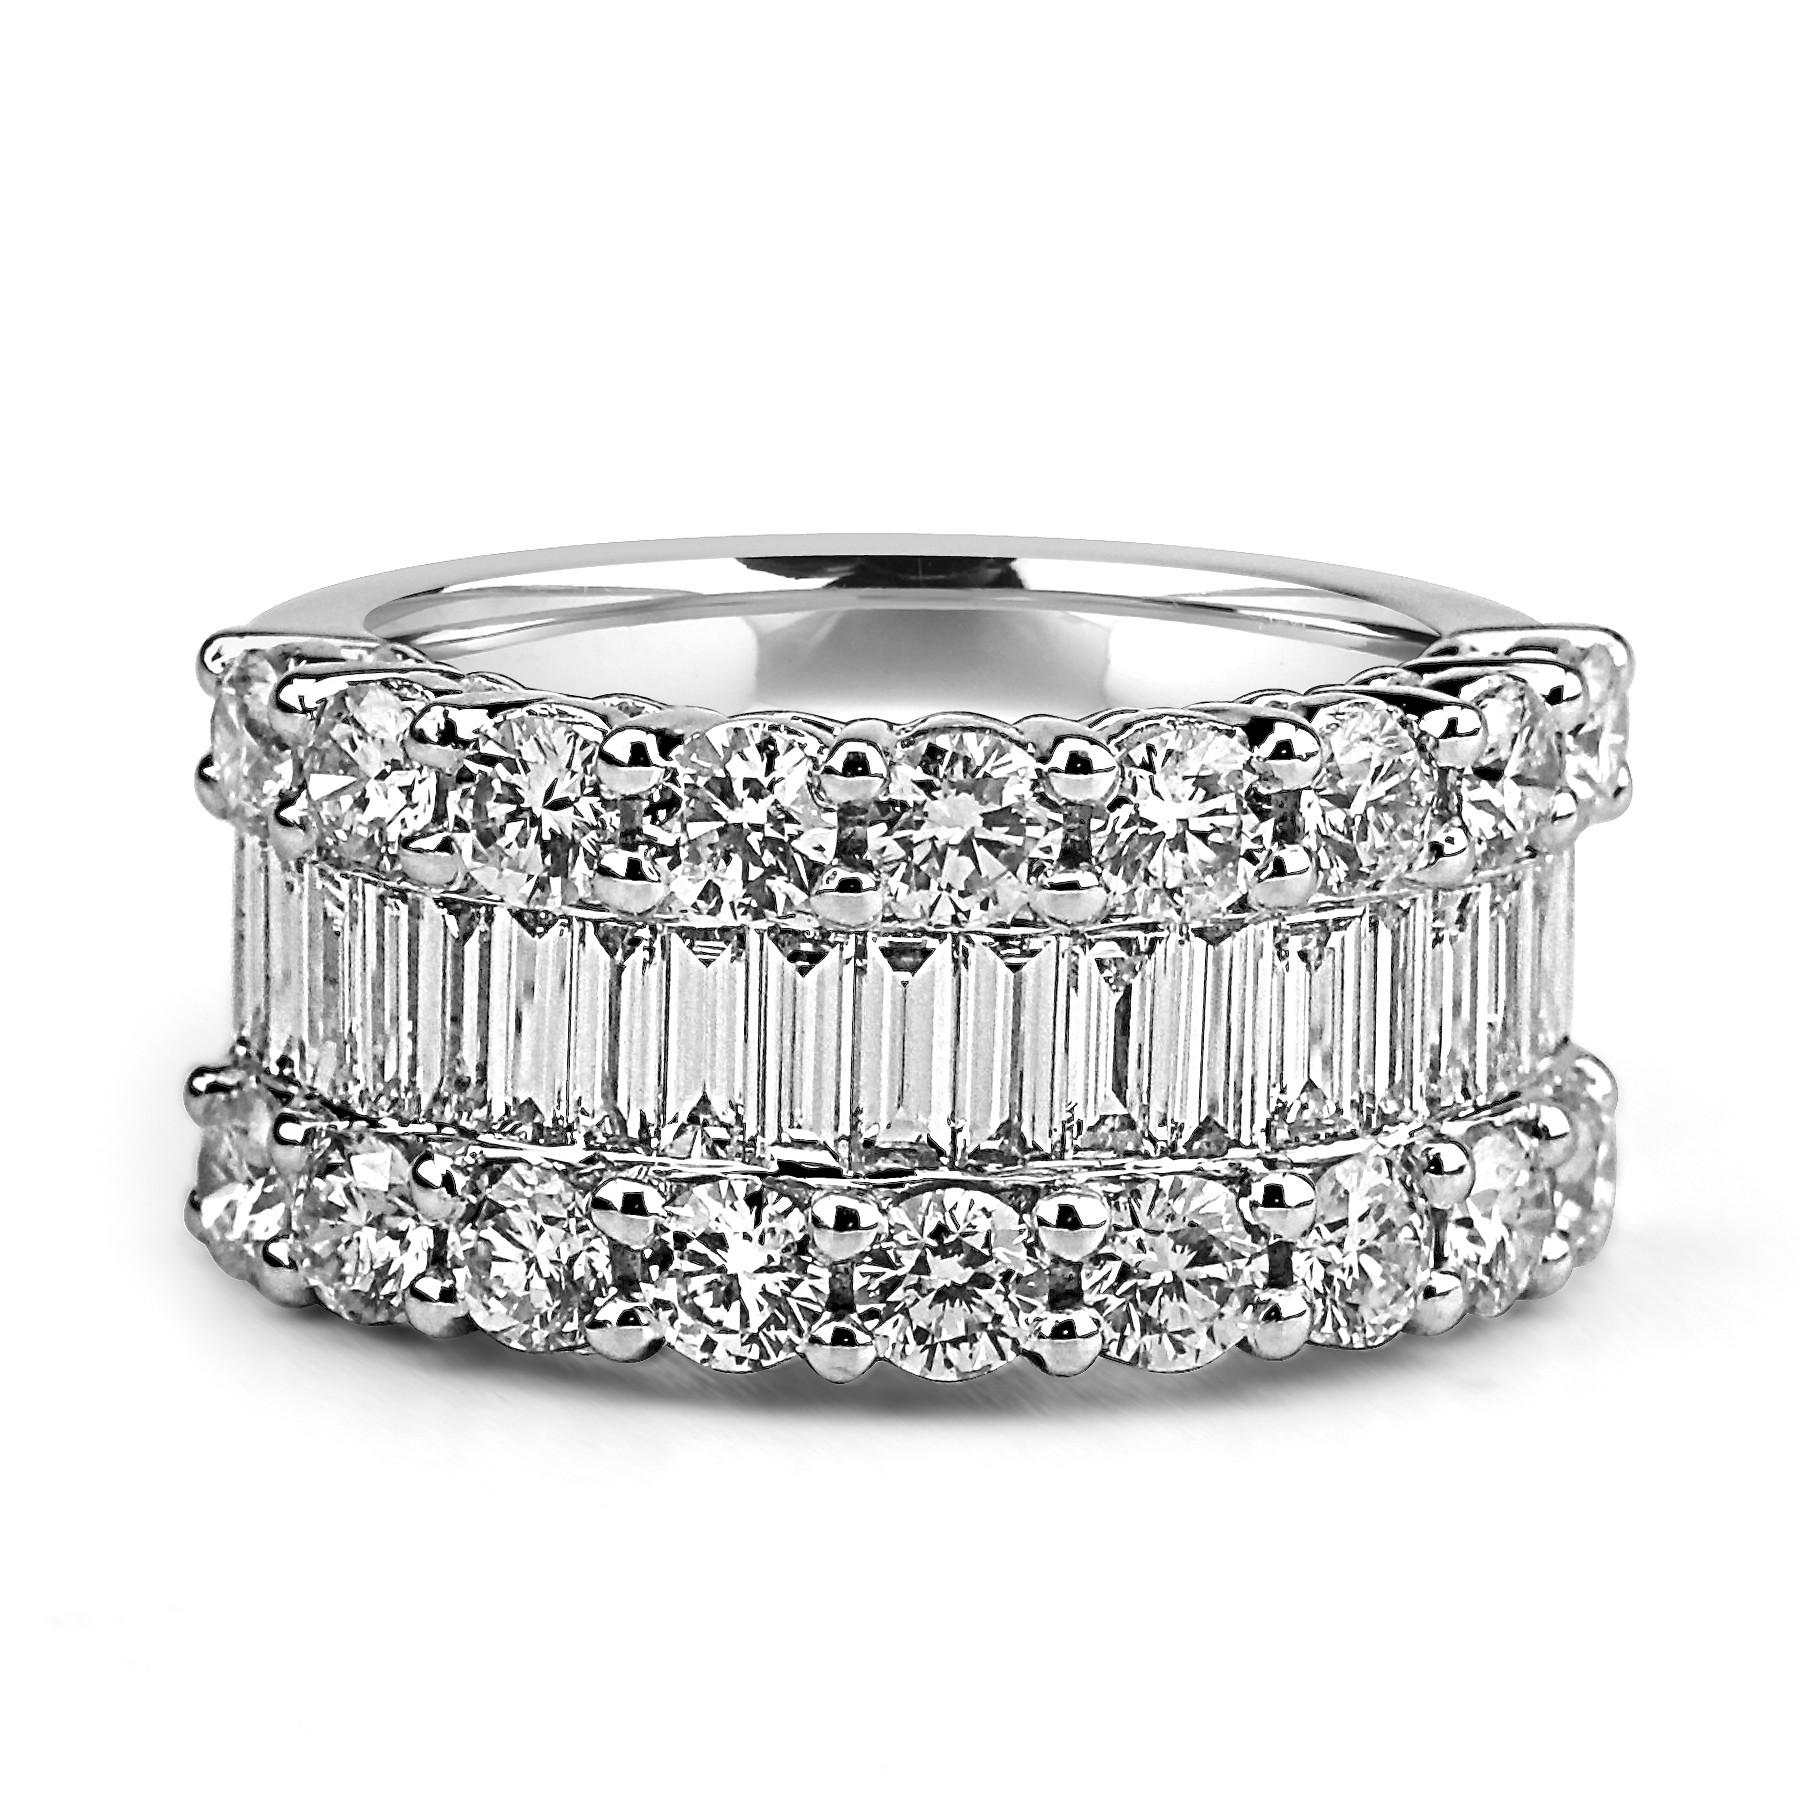 bands white band wedding baguette diamond eternity amp half round ring image gold